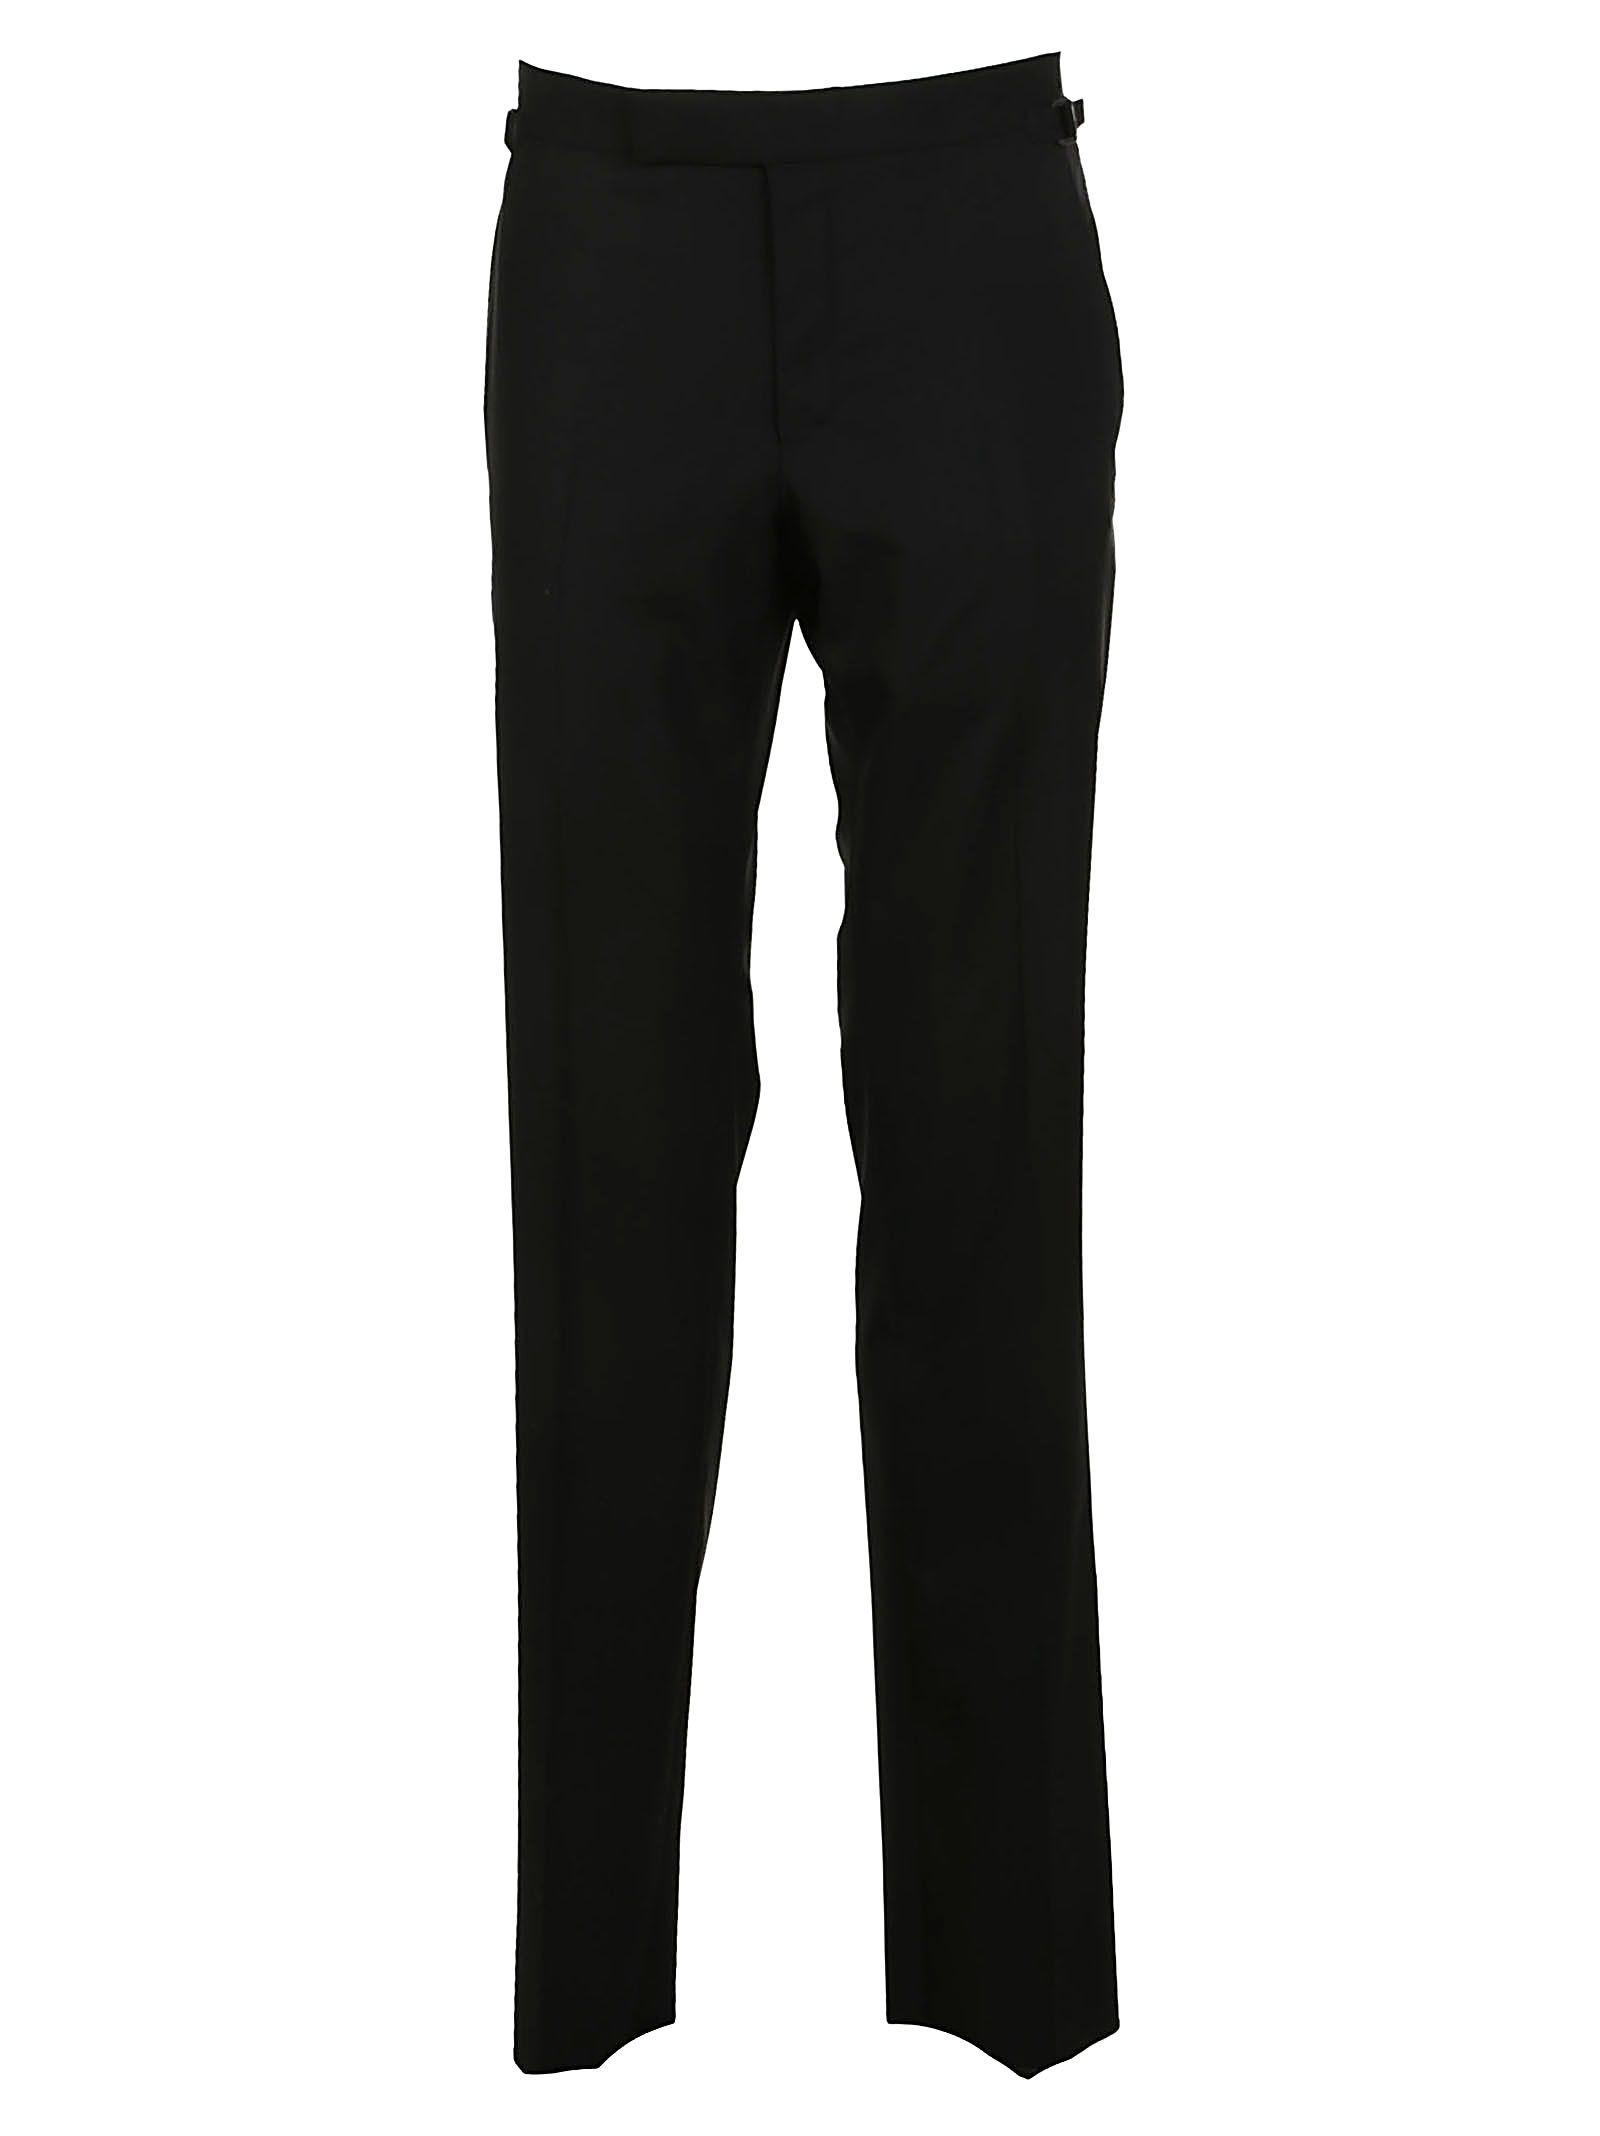 Tom Ford Tailored Straight-Leg Trousers In Black Black